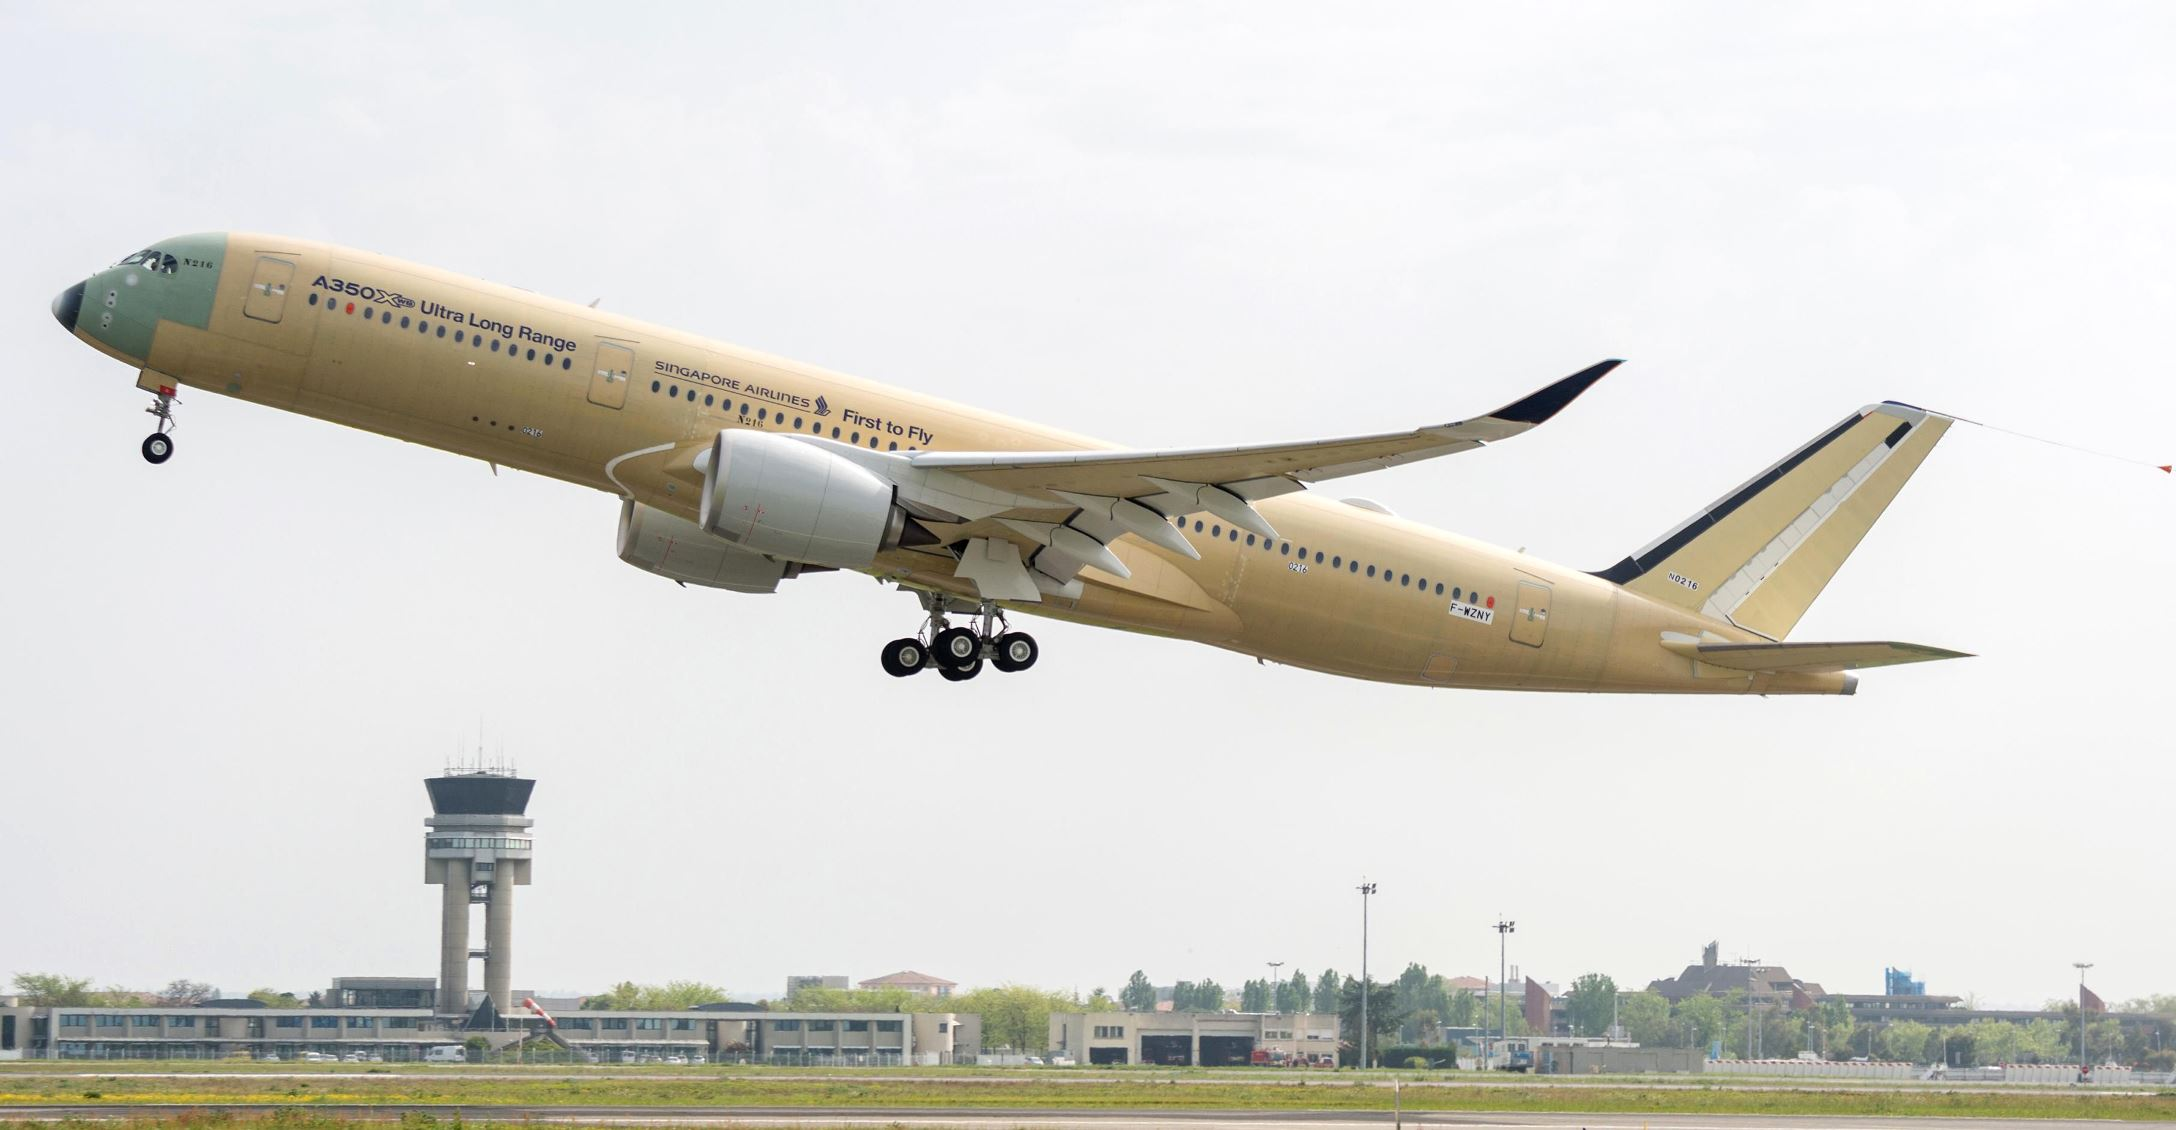 Airbus-A350-900-ULR-Singapore-Airlines-take-off